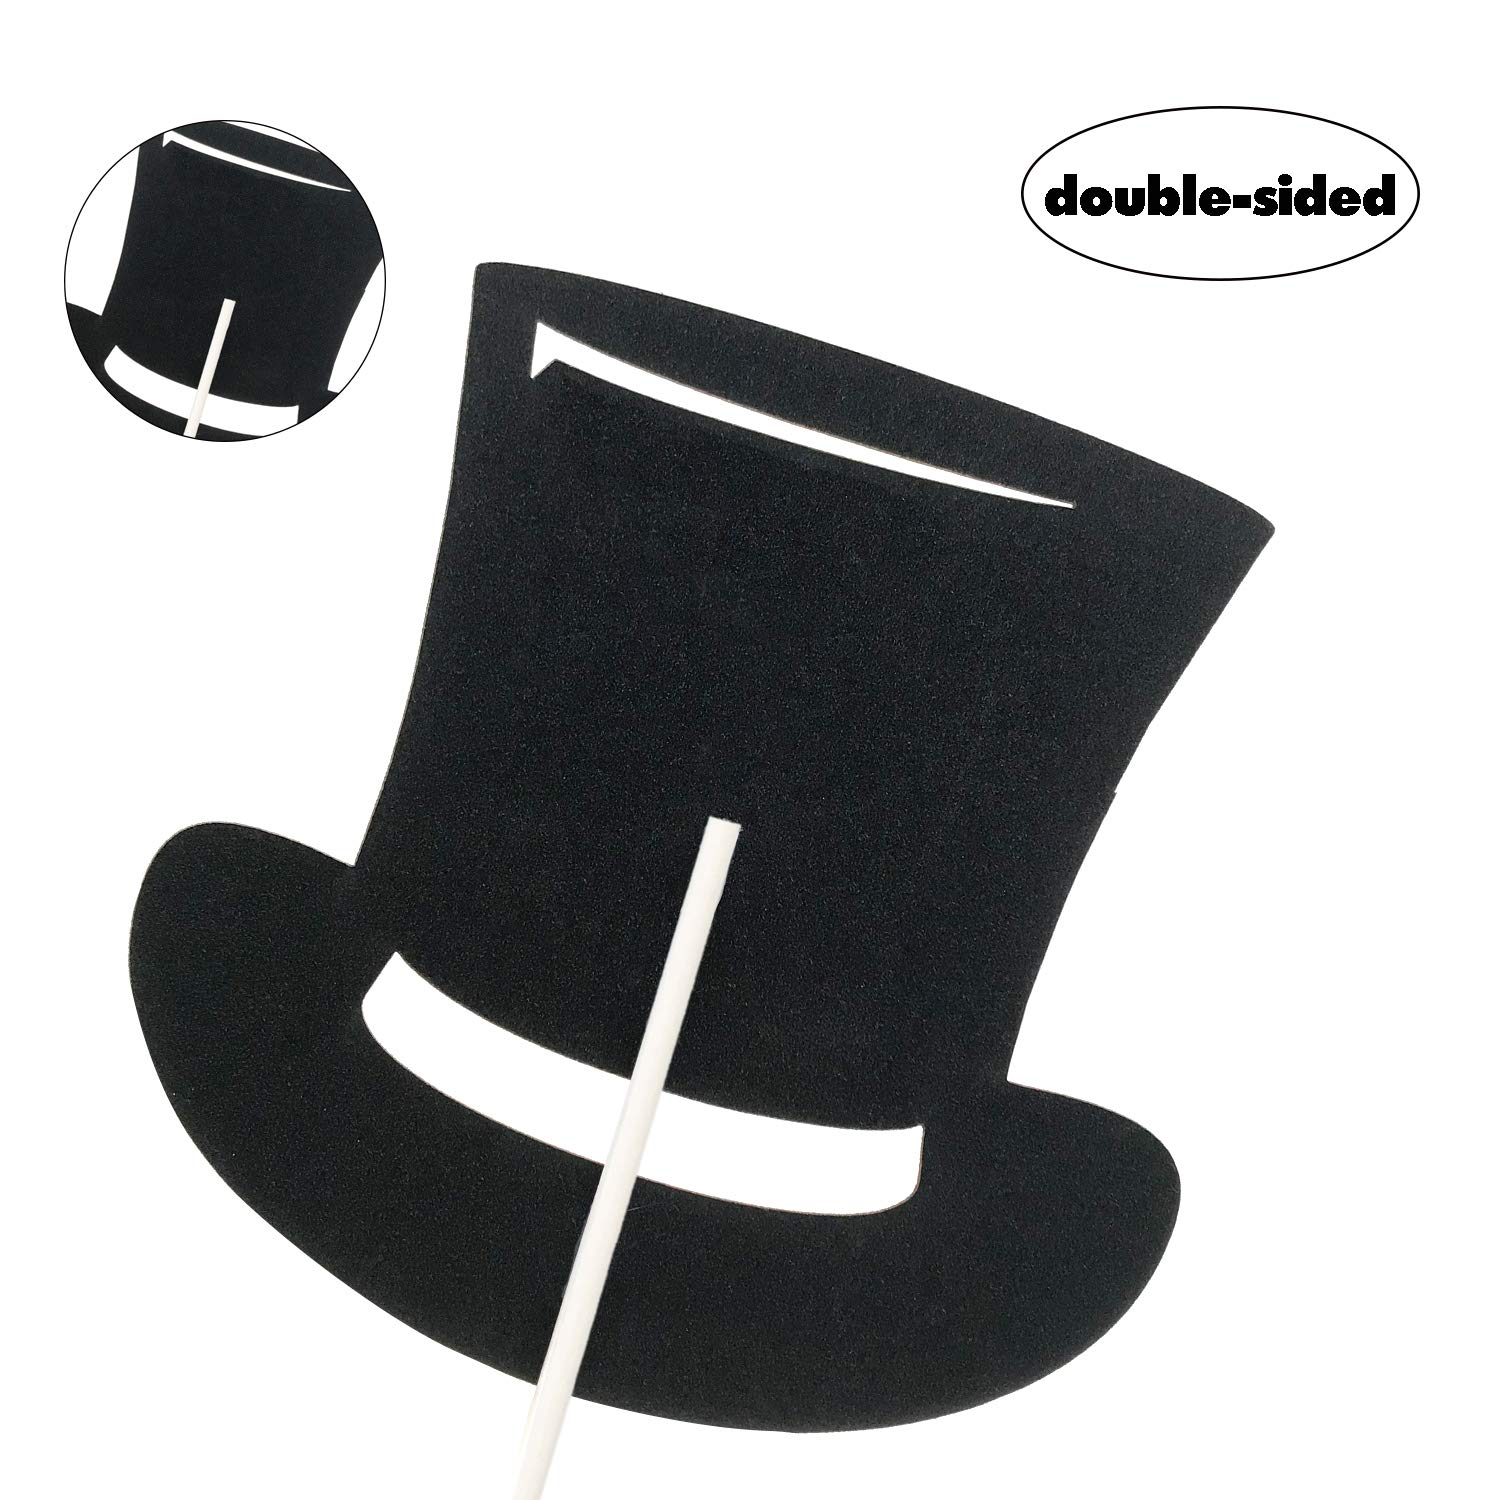 Top Hat Little Man Cake Topper for Baby Boy Birthday Baby Shower Gender Reveal Party Decorations Supplies-Black Double Side Glitter